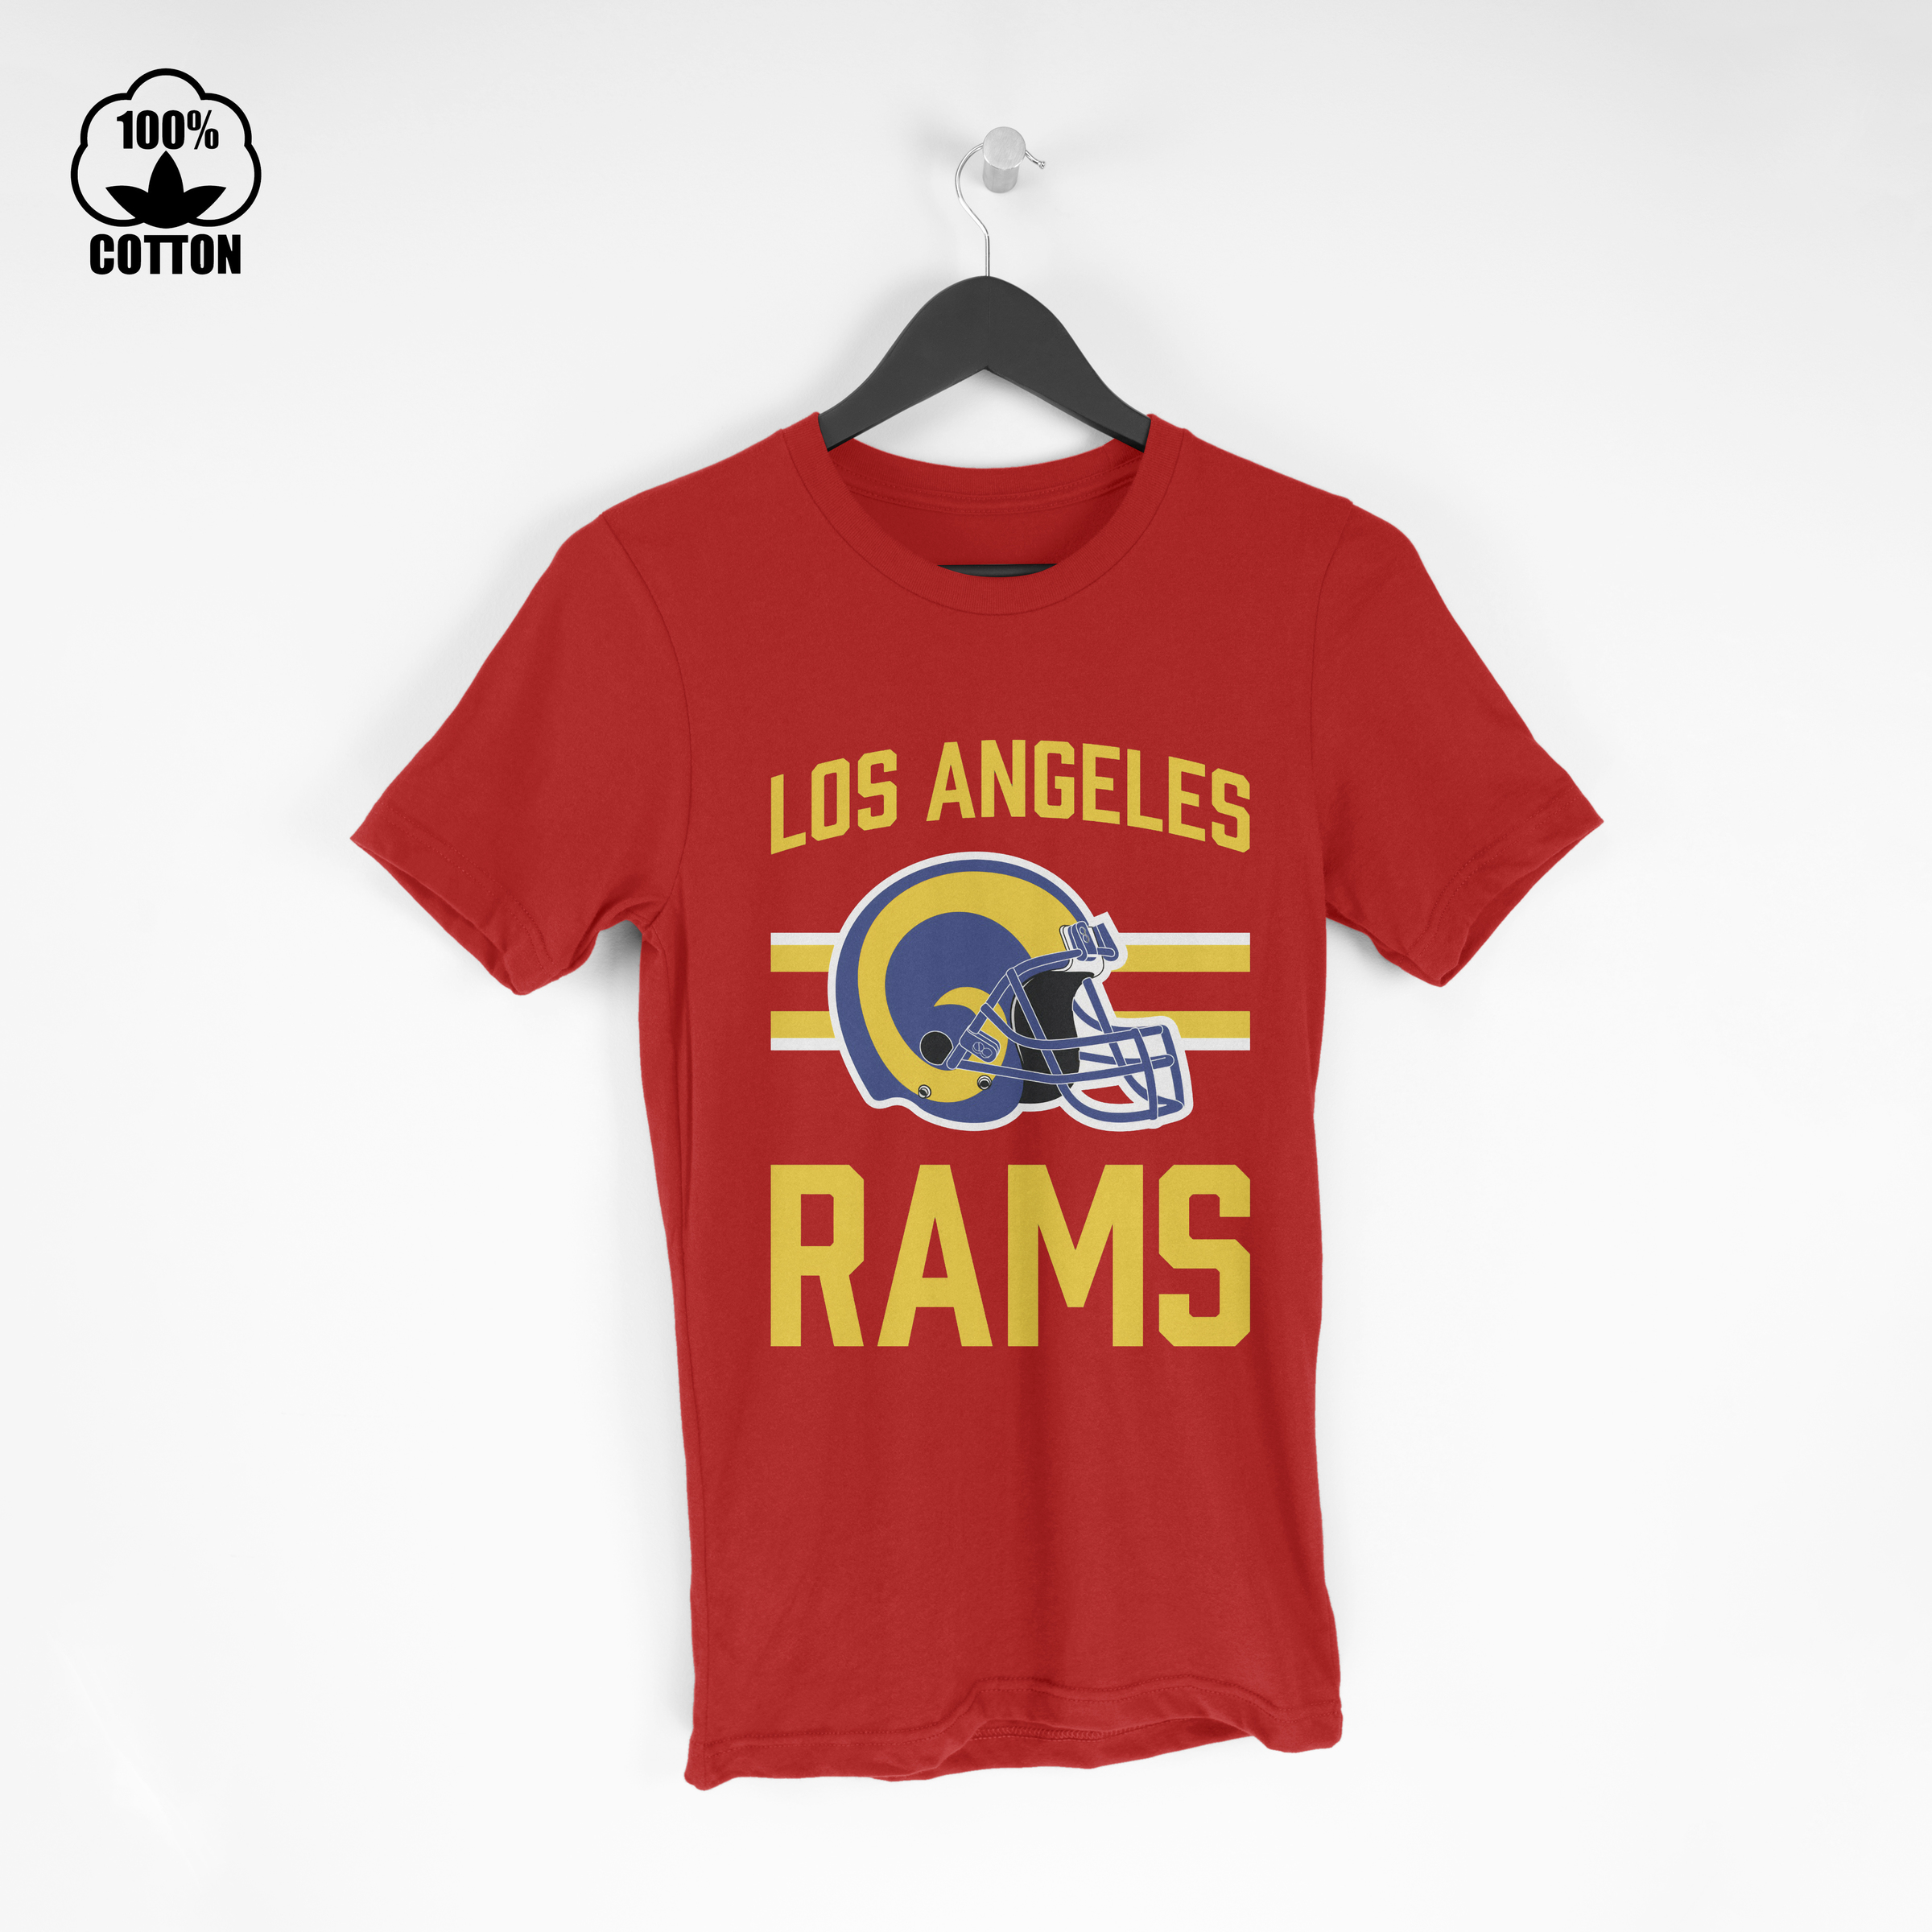 LIMITED EDITION!! Los Angeles Rams OD4 T Shirt Tee Red.jpg